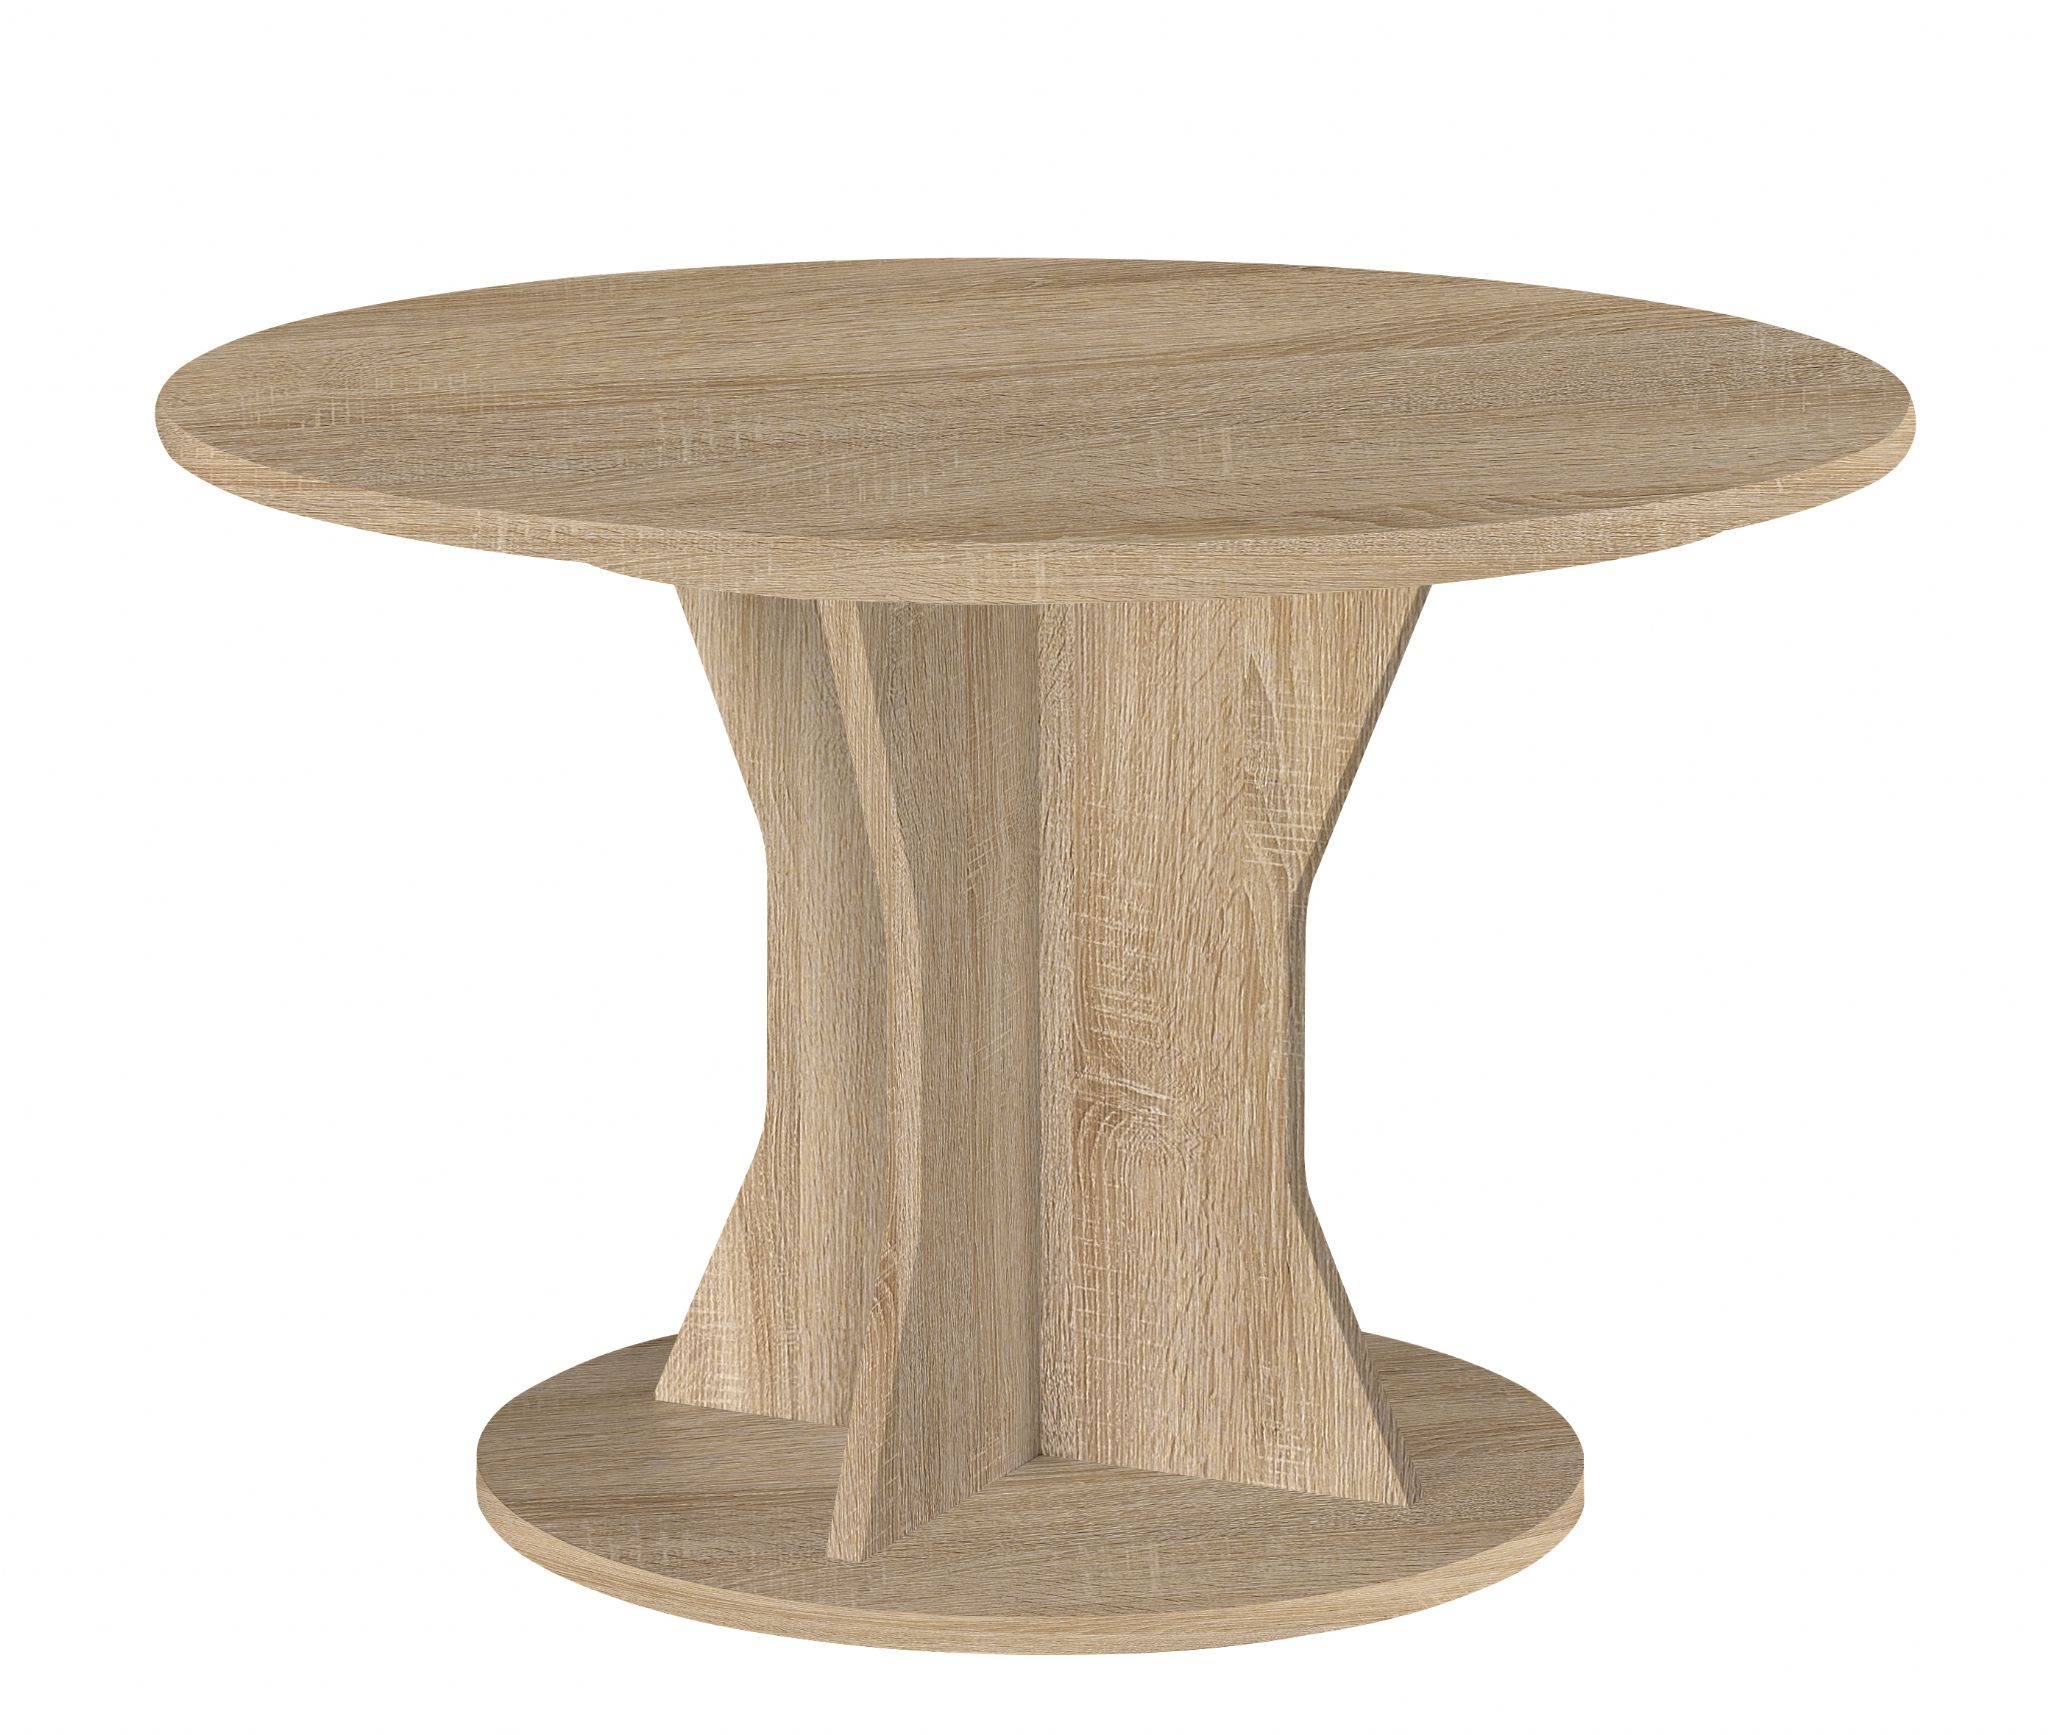 Modern Palace Extending Round Dining Table In White Sawn